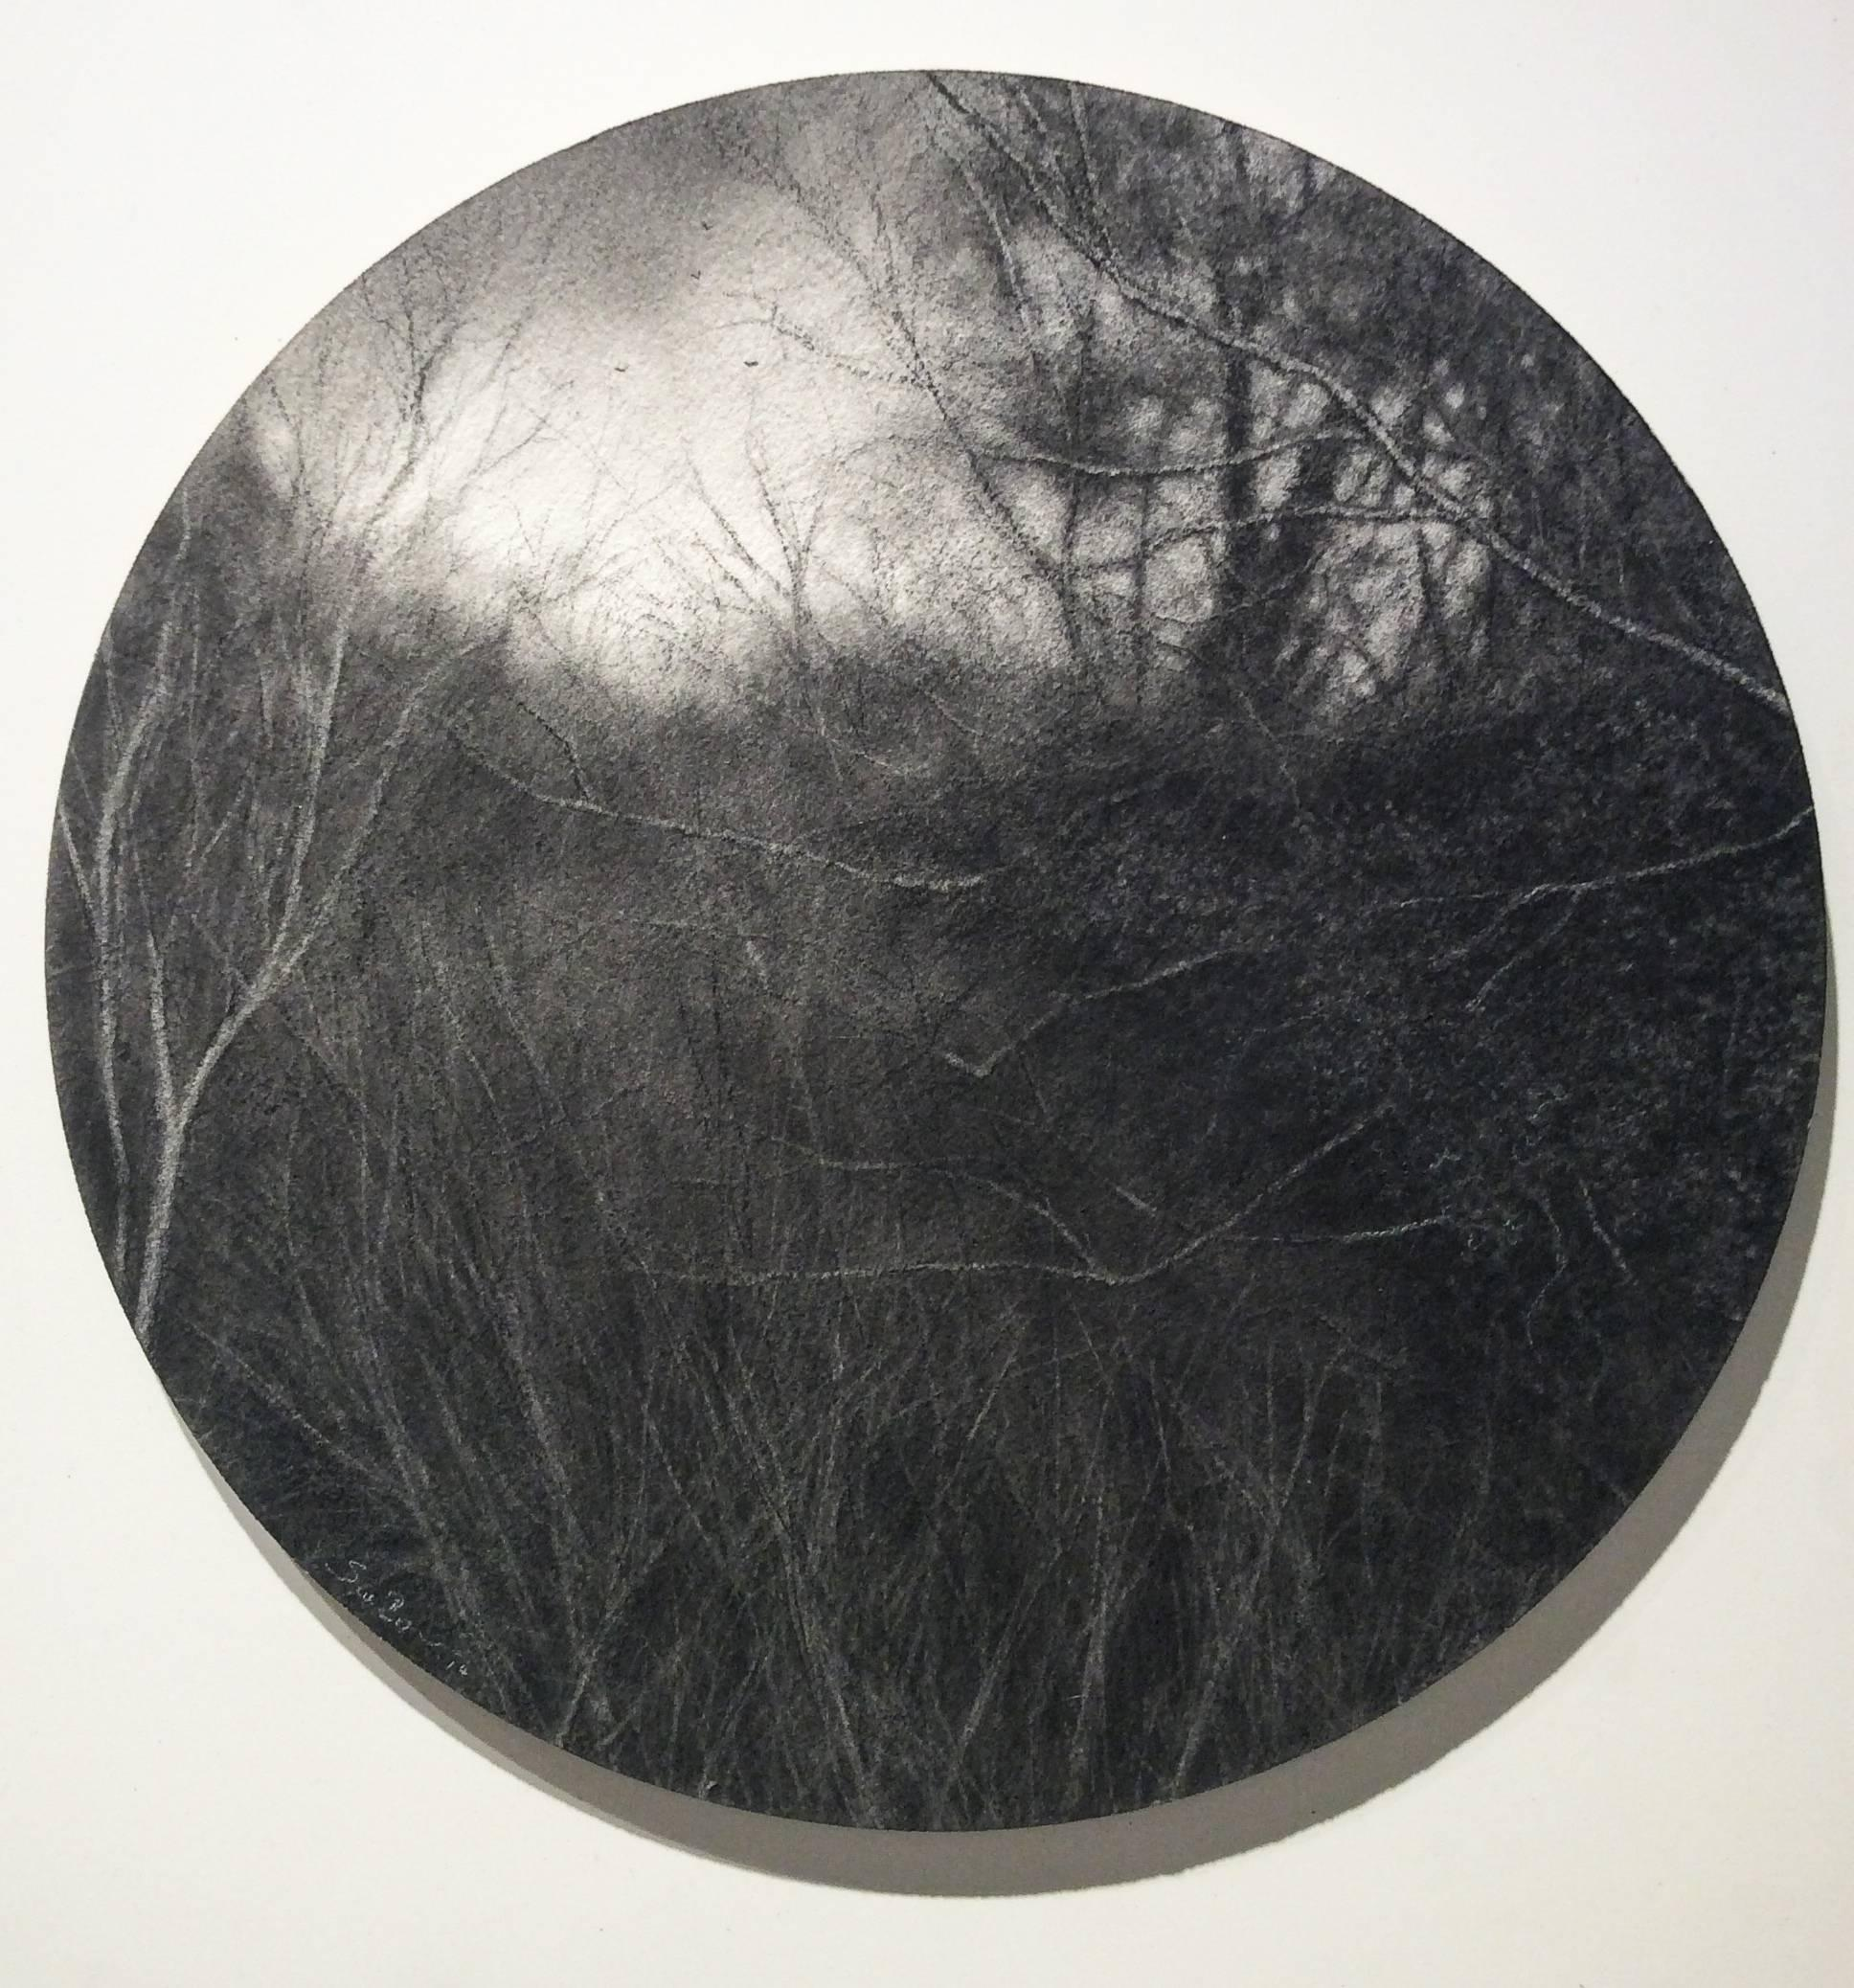 Aperture (Realistic Charcoal Landscape Drawing of Forest on Circular Panel)